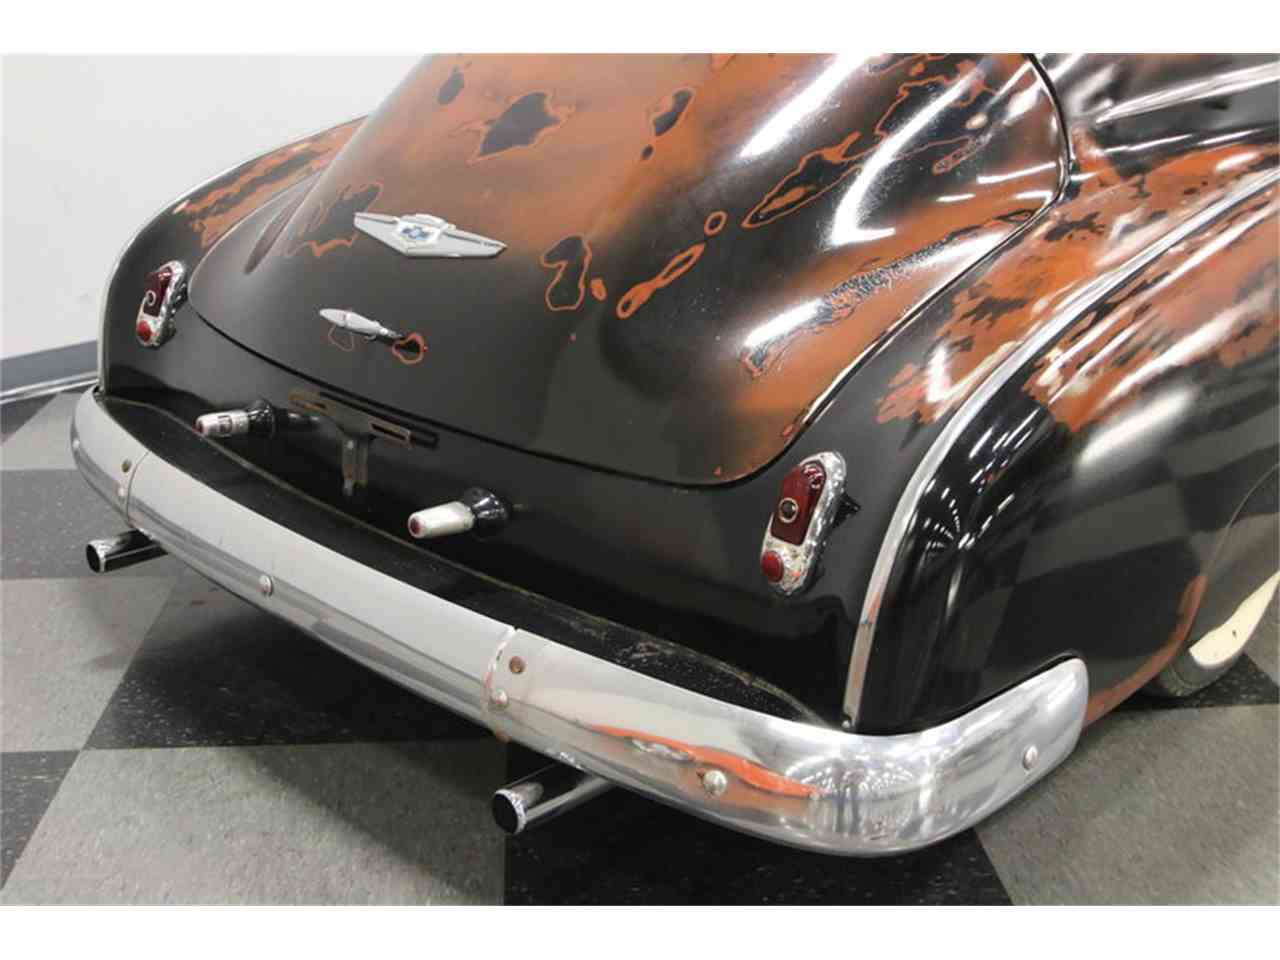 Large Picture of Classic 1950 Chevrolet Styleline Deluxe located in Tennessee - $15,995.00 Offered by Streetside Classics - Nashville - MZSM